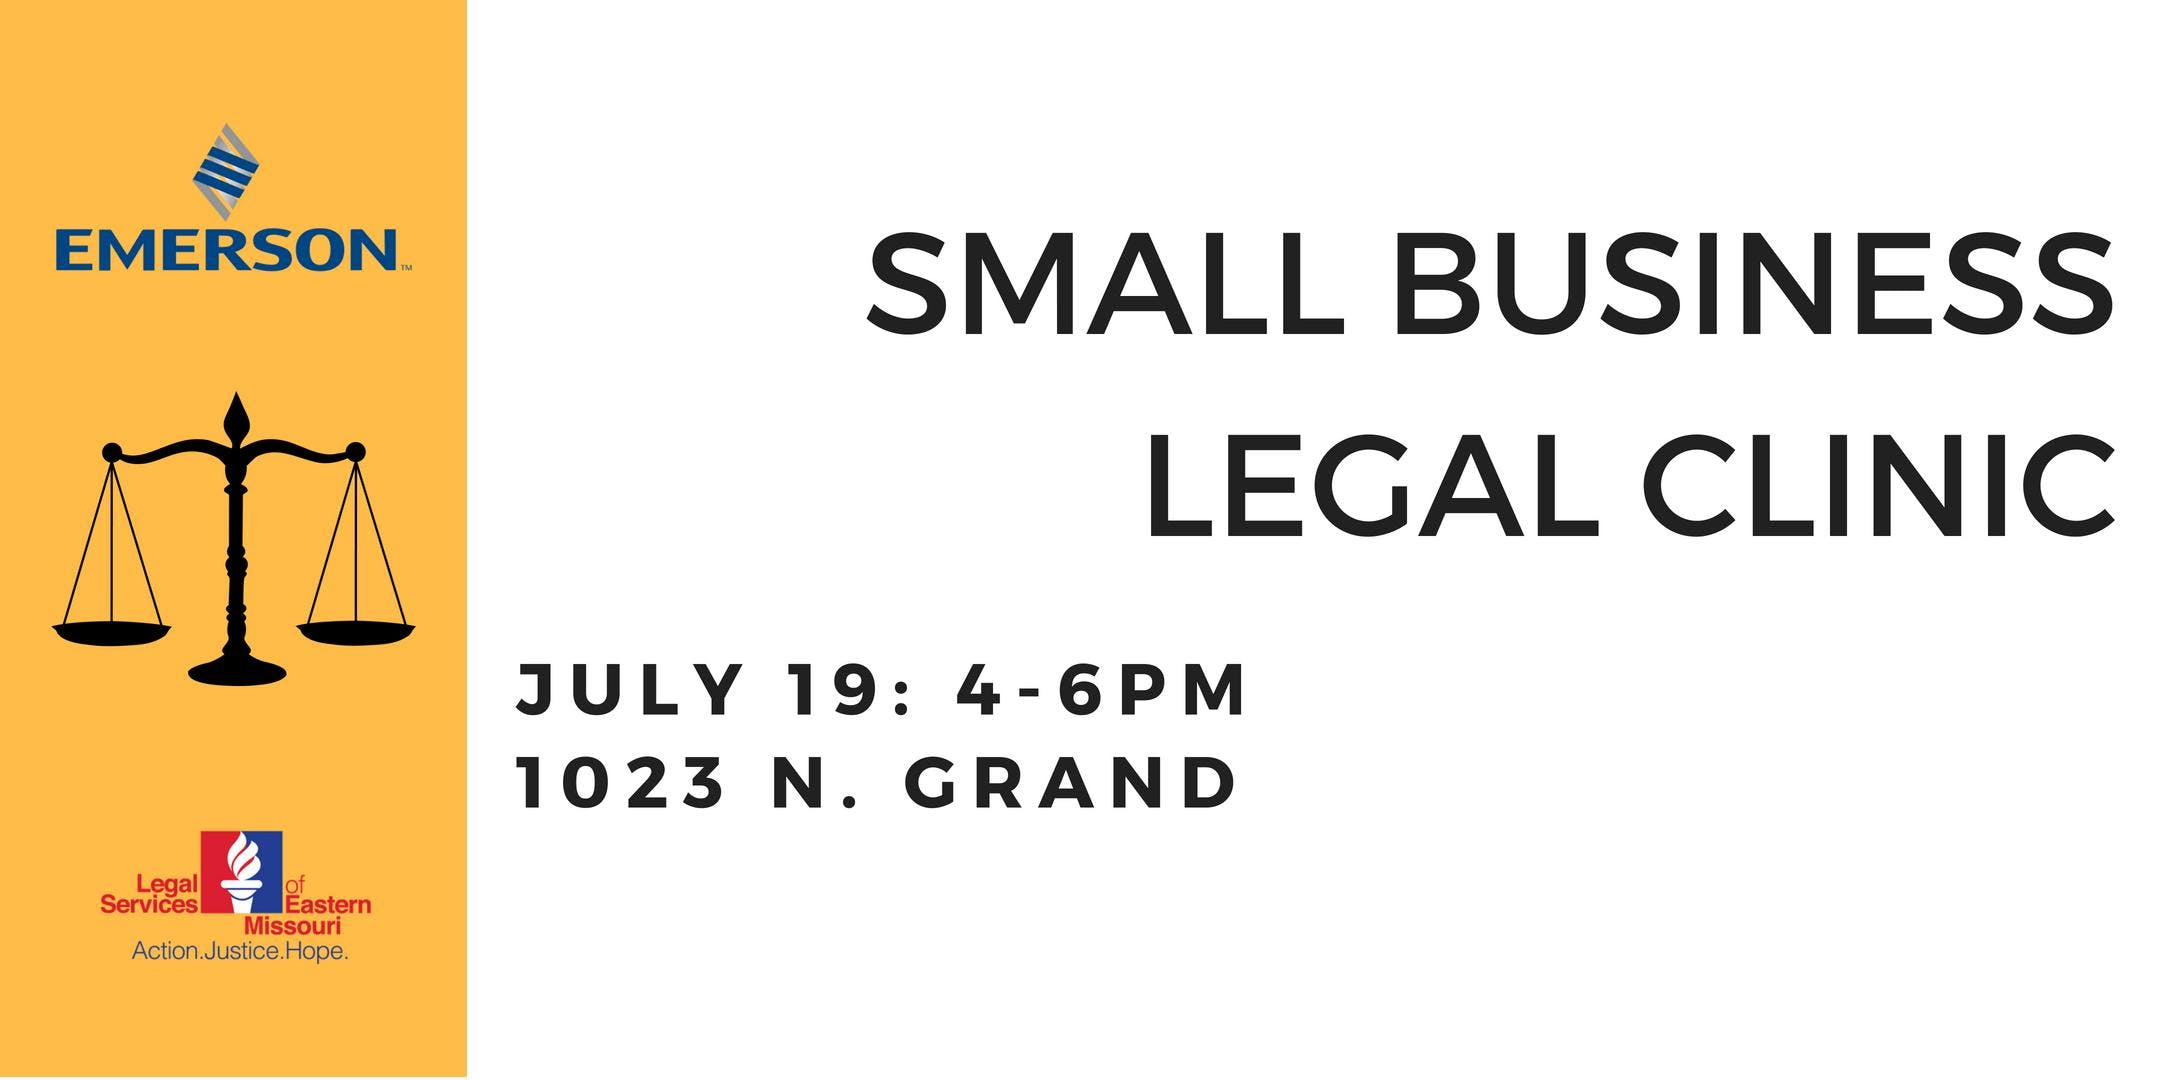 Small Business Legal Clinic